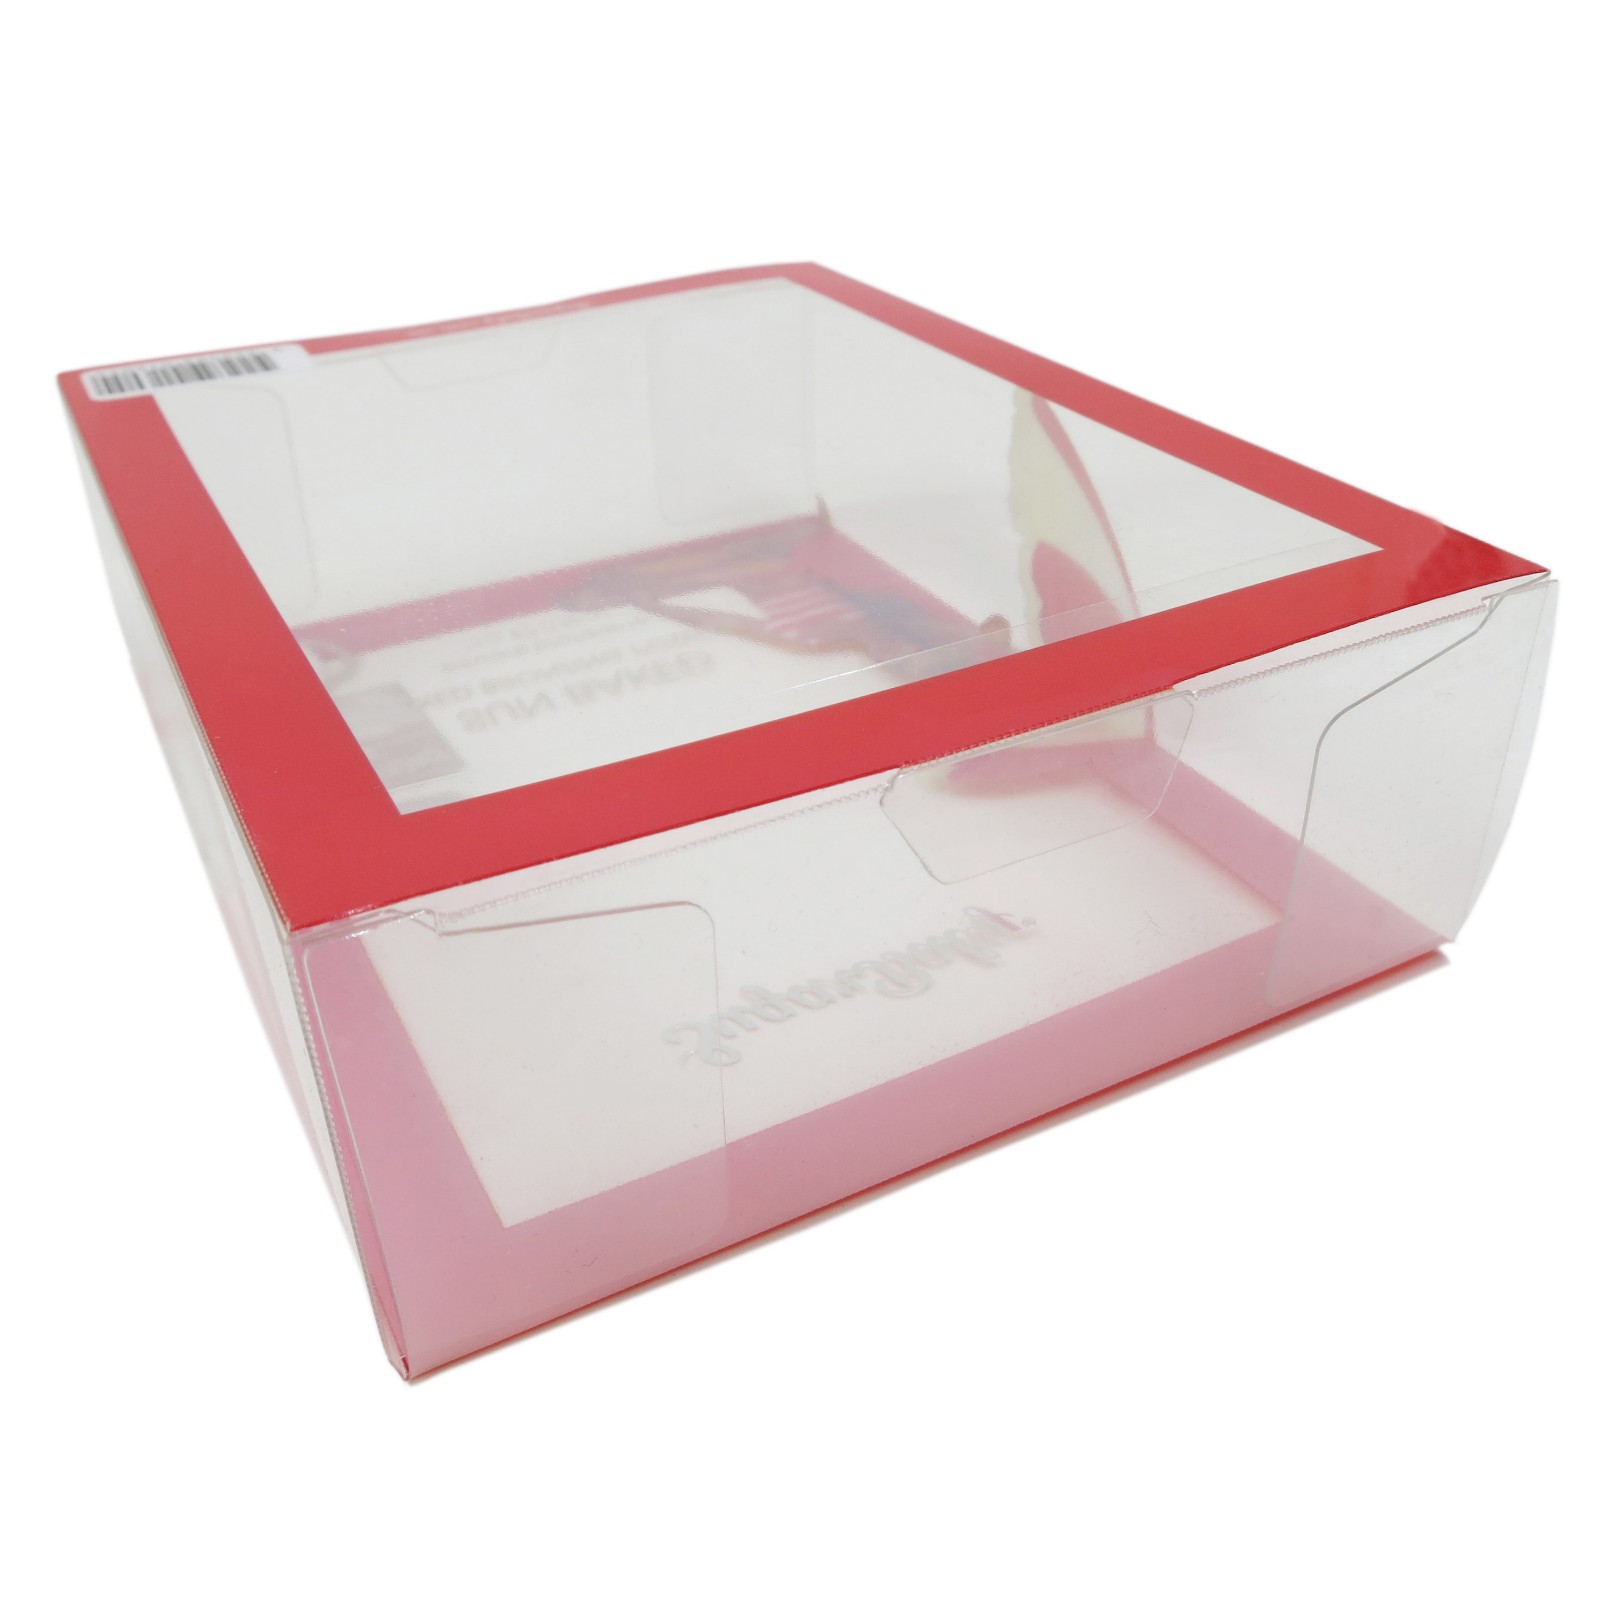 first-rate plastic box packaging display widely-use for food-4